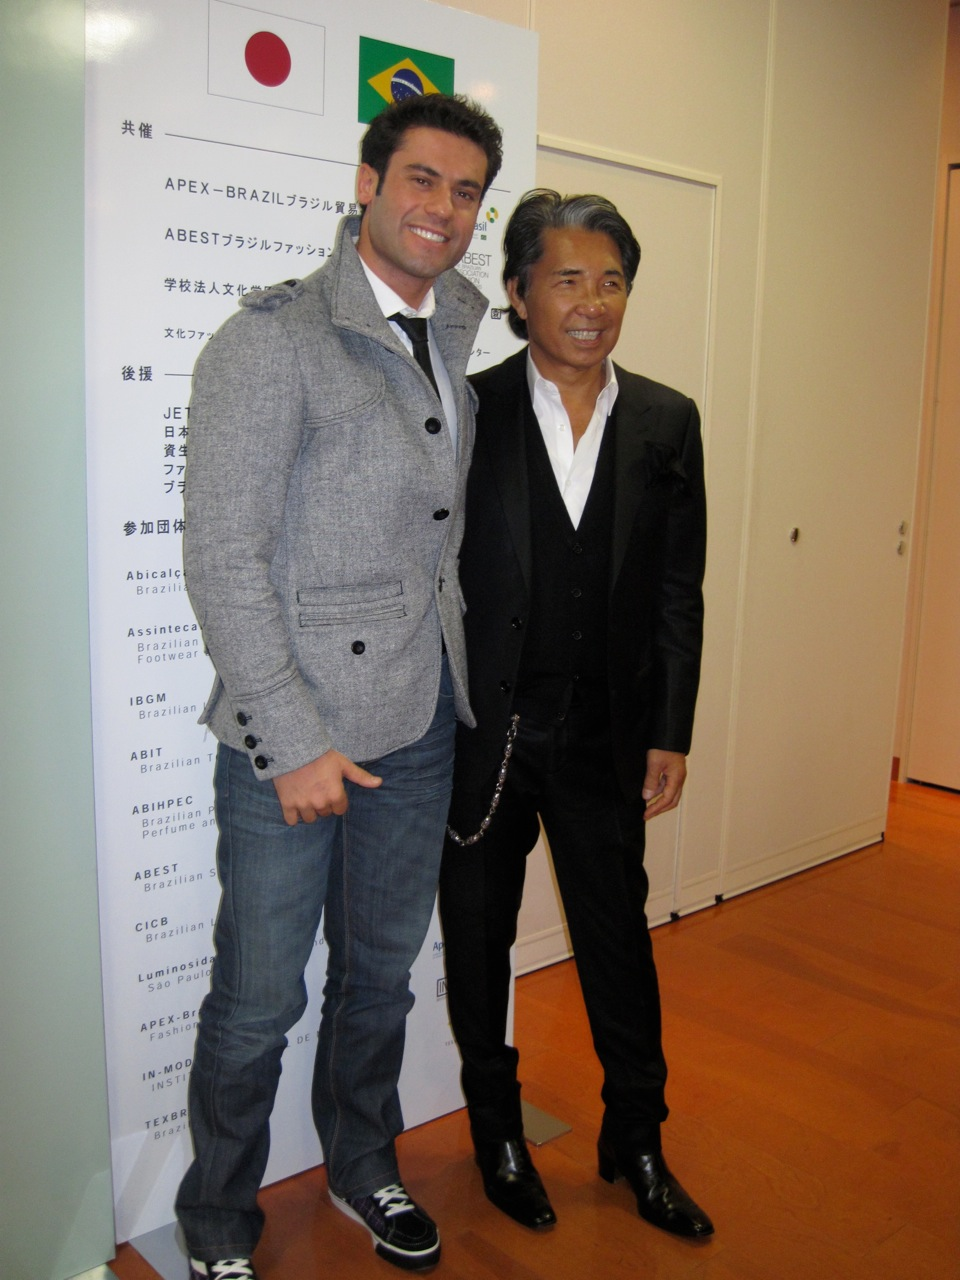 Rafito Andrade in Japan